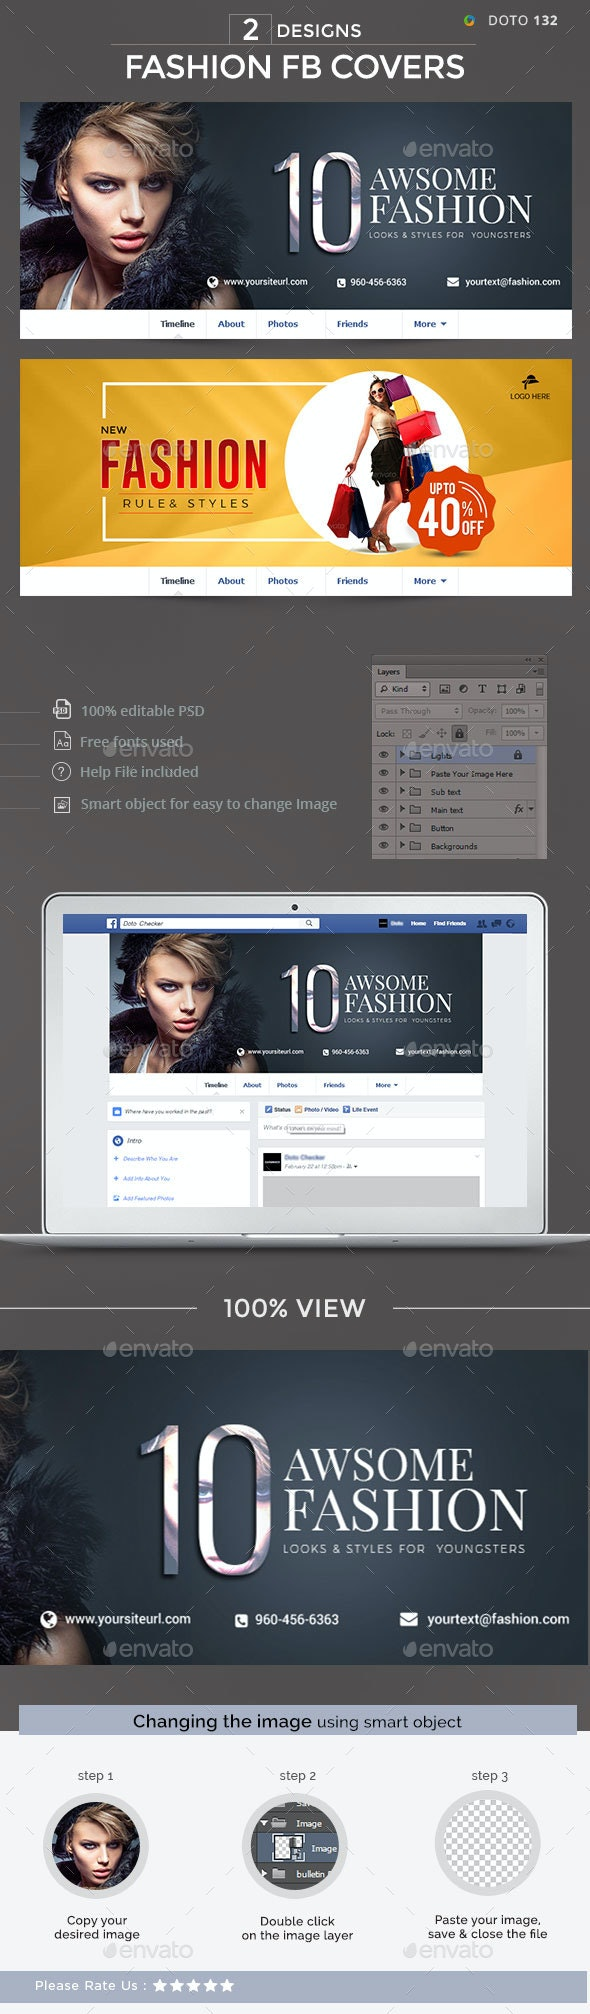 Fashion Facebook Covers - 2 Designs - Facebook Timeline Covers Social Media